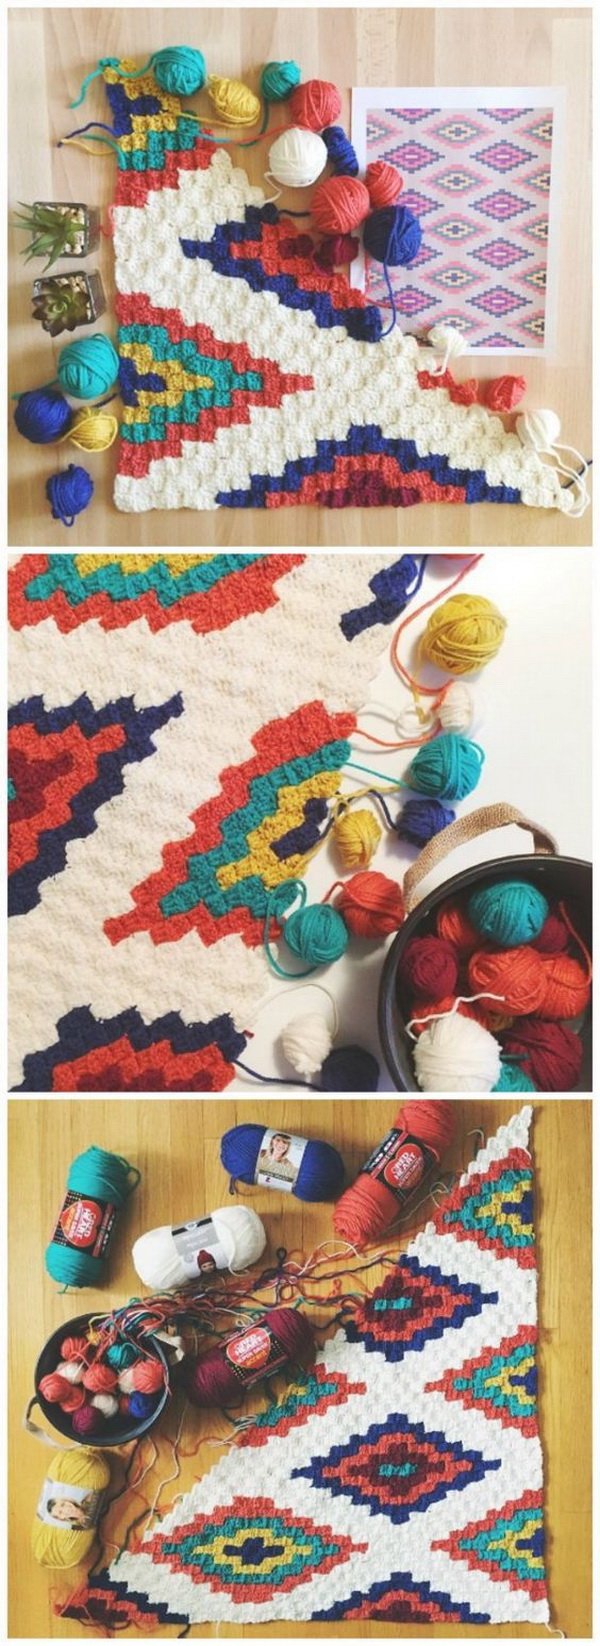 Quick And Easy Crochet Blanket Patterns For Beginners: Corner To Corner Crochet Southwestern Throw Blanket.